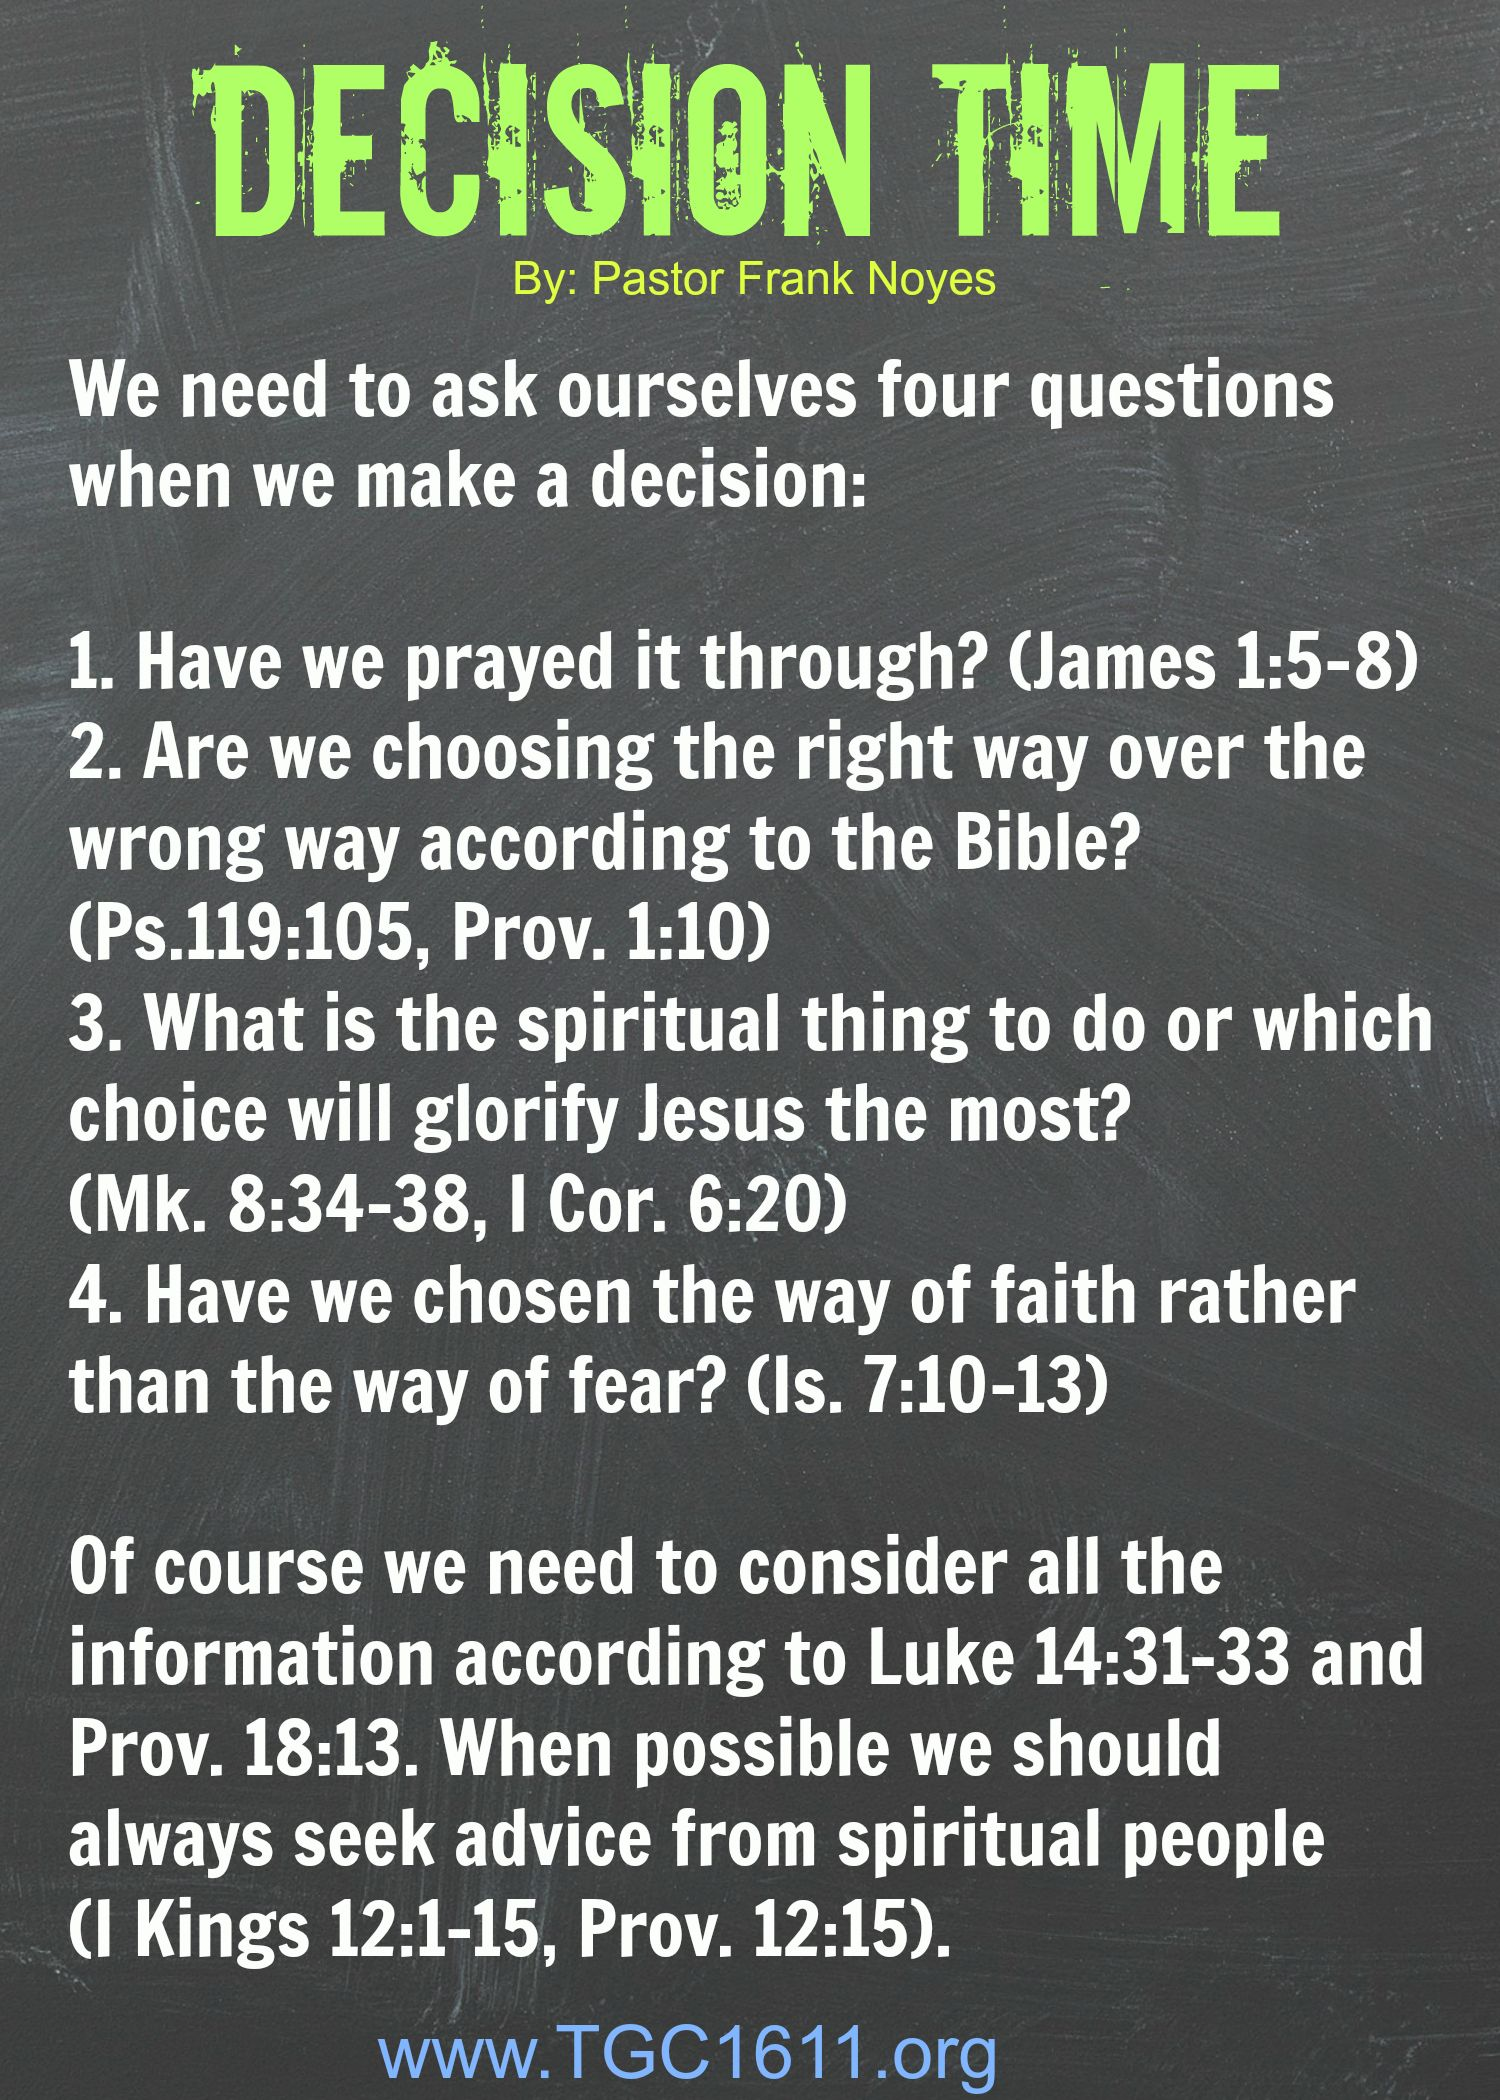 Only way to make a right decision, is to know God's will